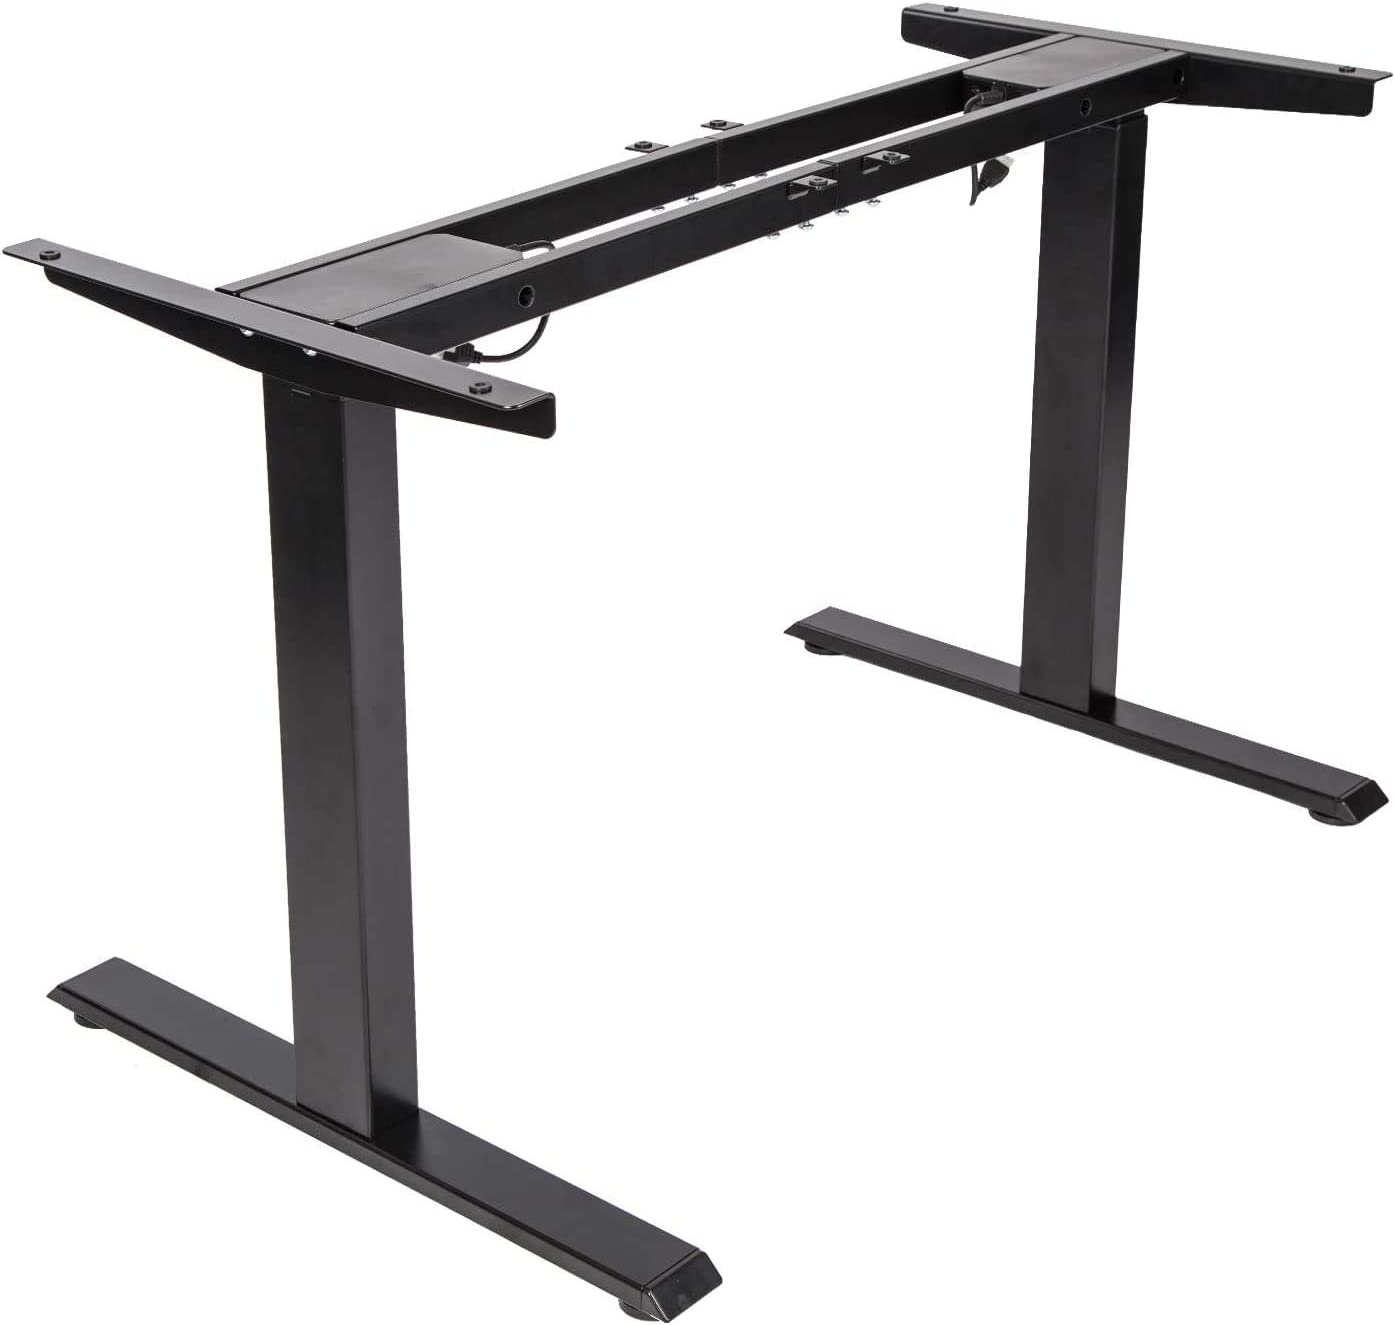 TOPSKY Dual Motor Electric Adjustable Standing Computer Desk for Home and Office (Black Frame only)